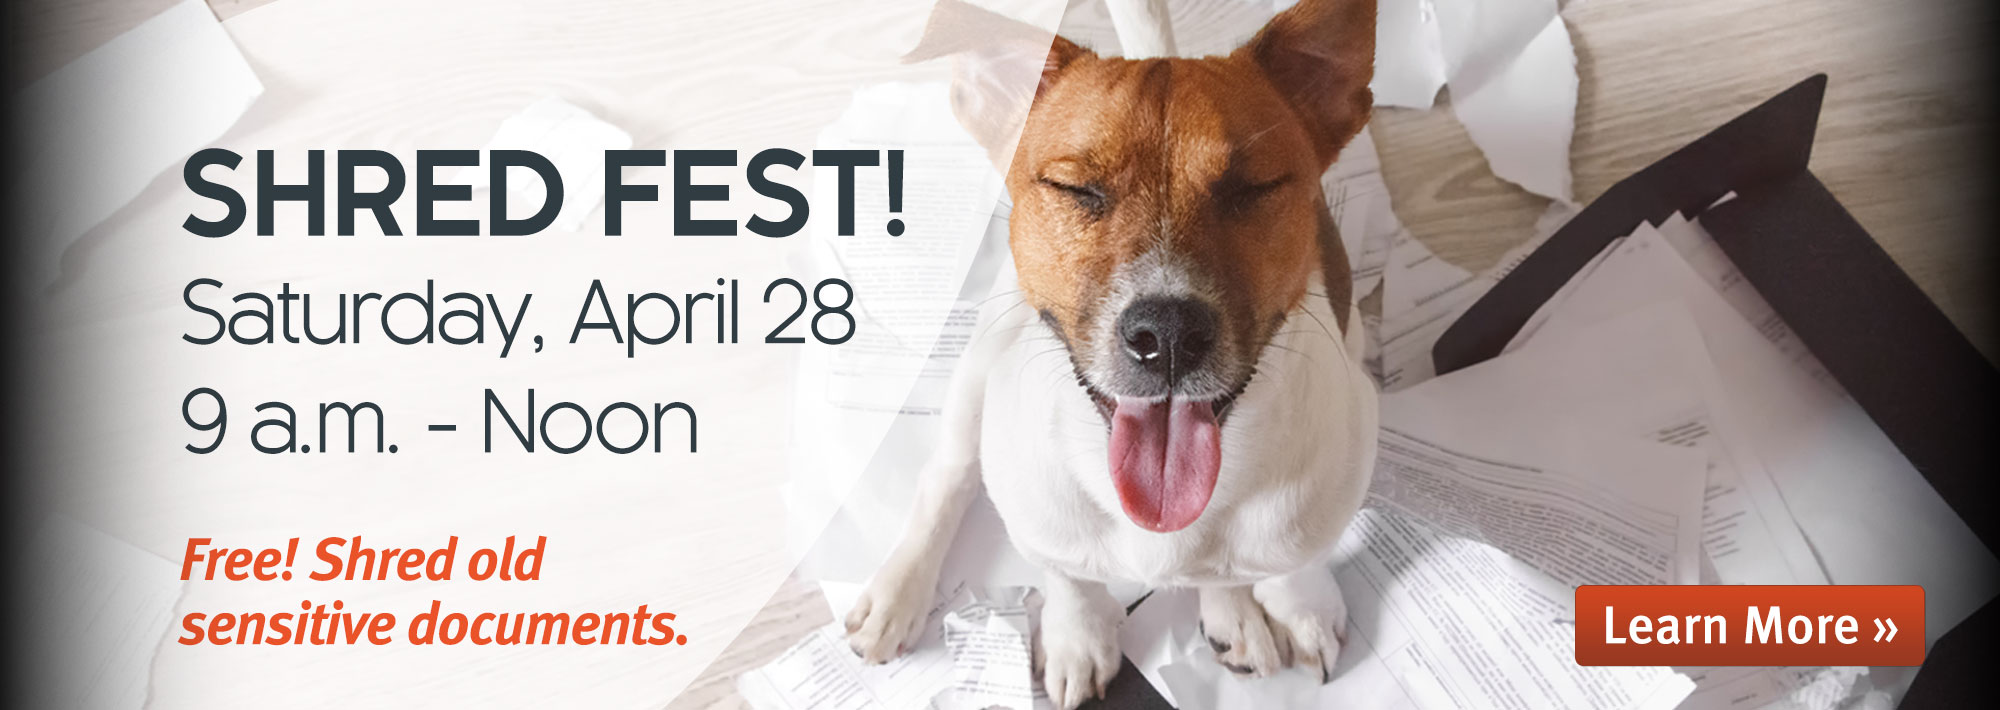 Shred Fest! Saturday, April 28, 9 a.m.-Noon. Free! Shred old sensitive documents.